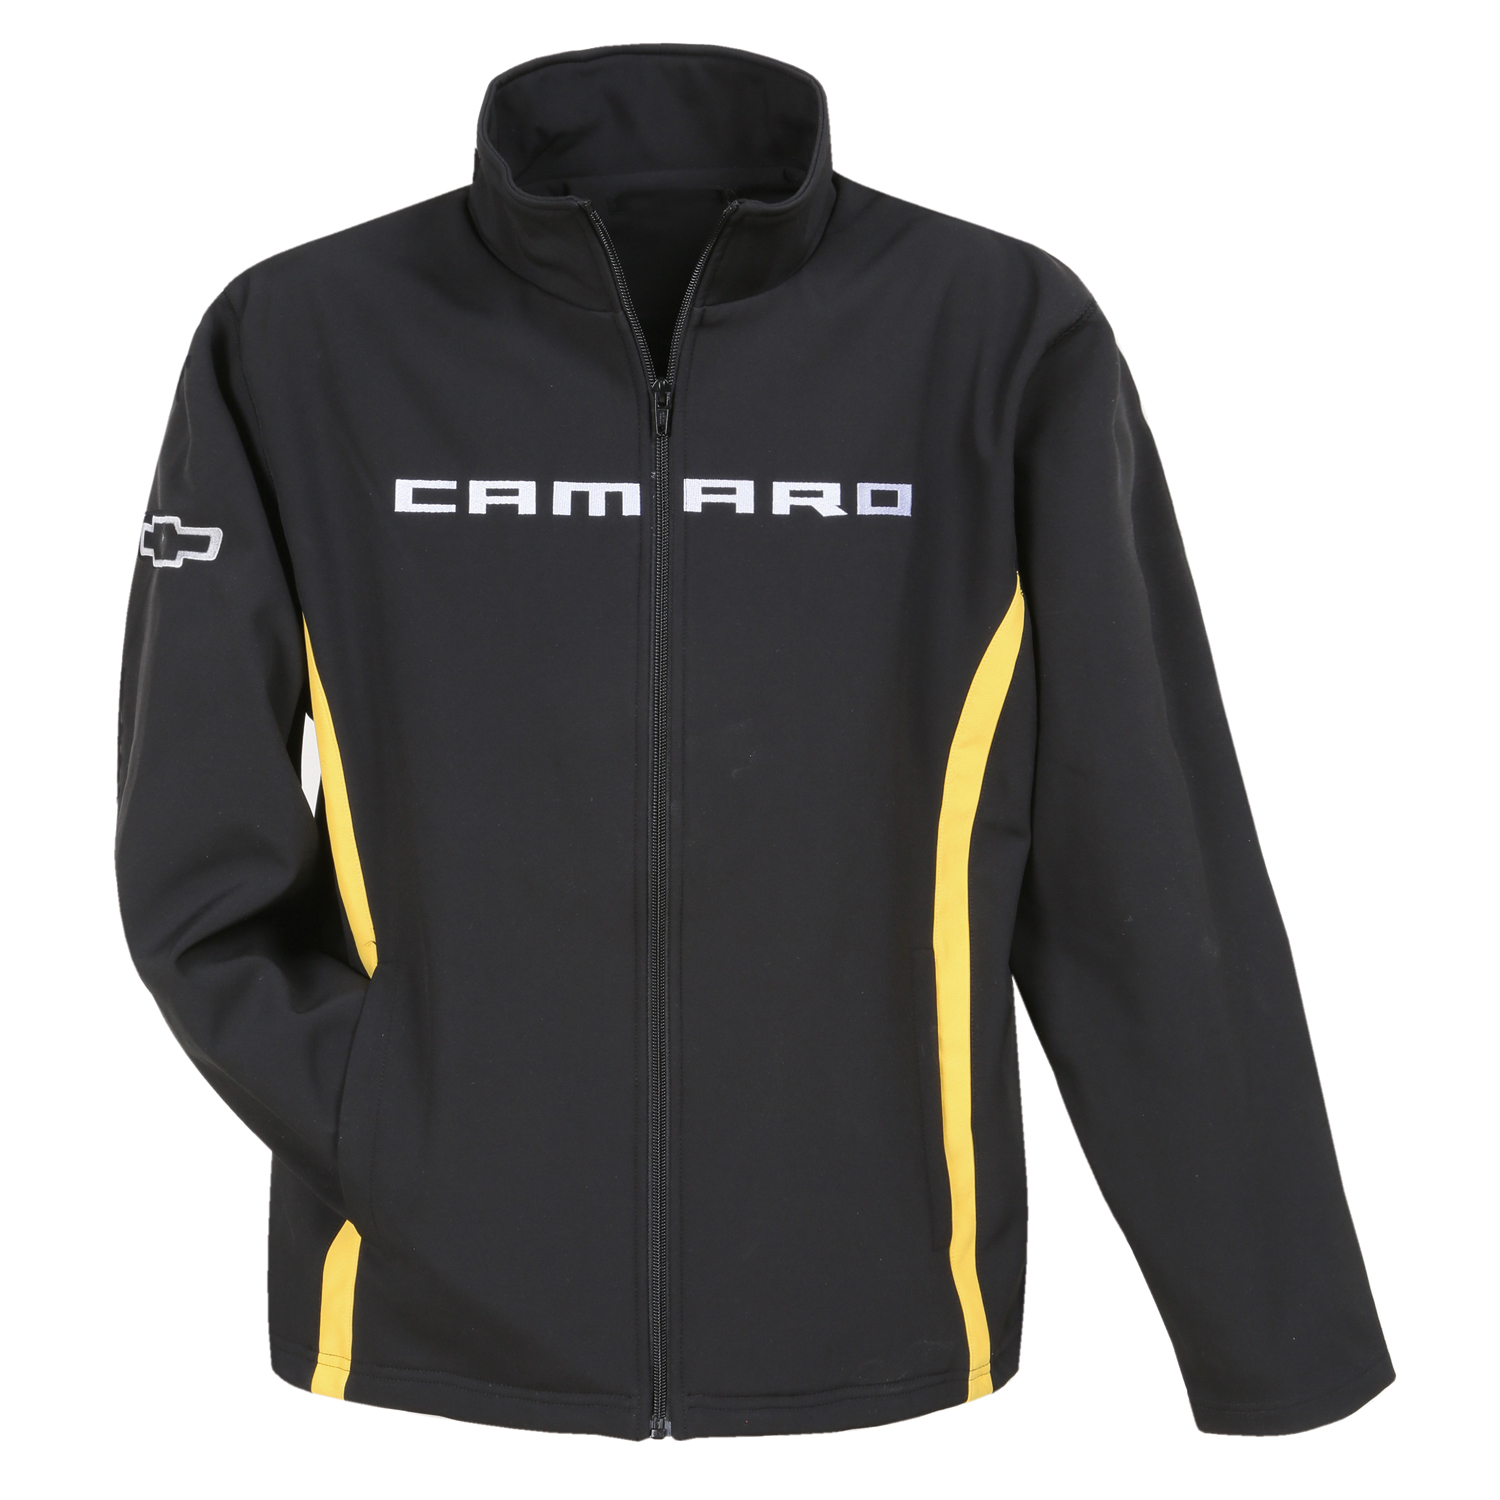 Universal Direct Brands CAMARO RACING JACKET at Sears.com